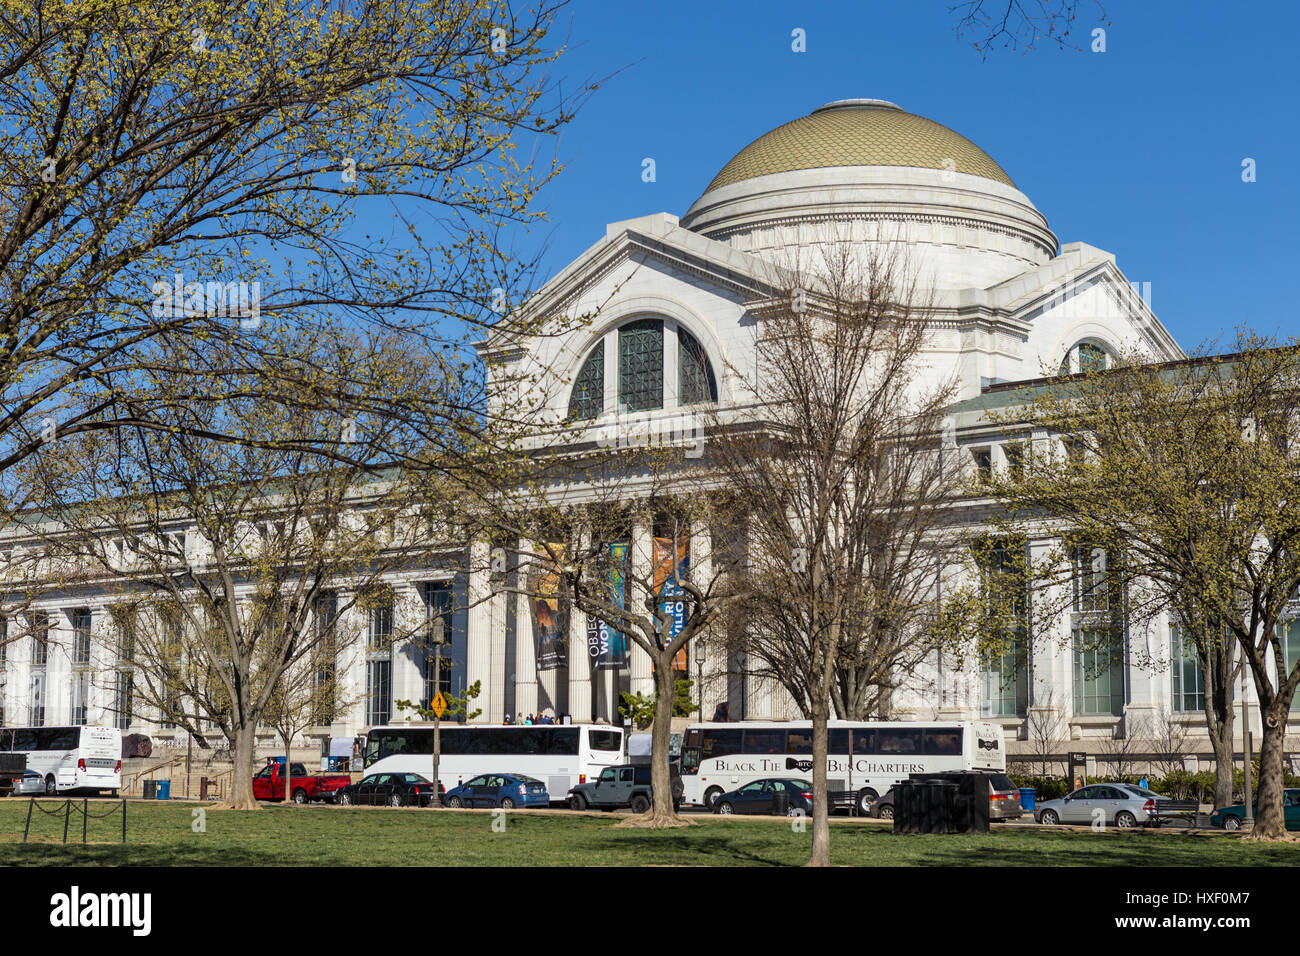 A view of the Neo-classical National Museum of Natural History on the National Mall in Washington, DC. - Stock Image